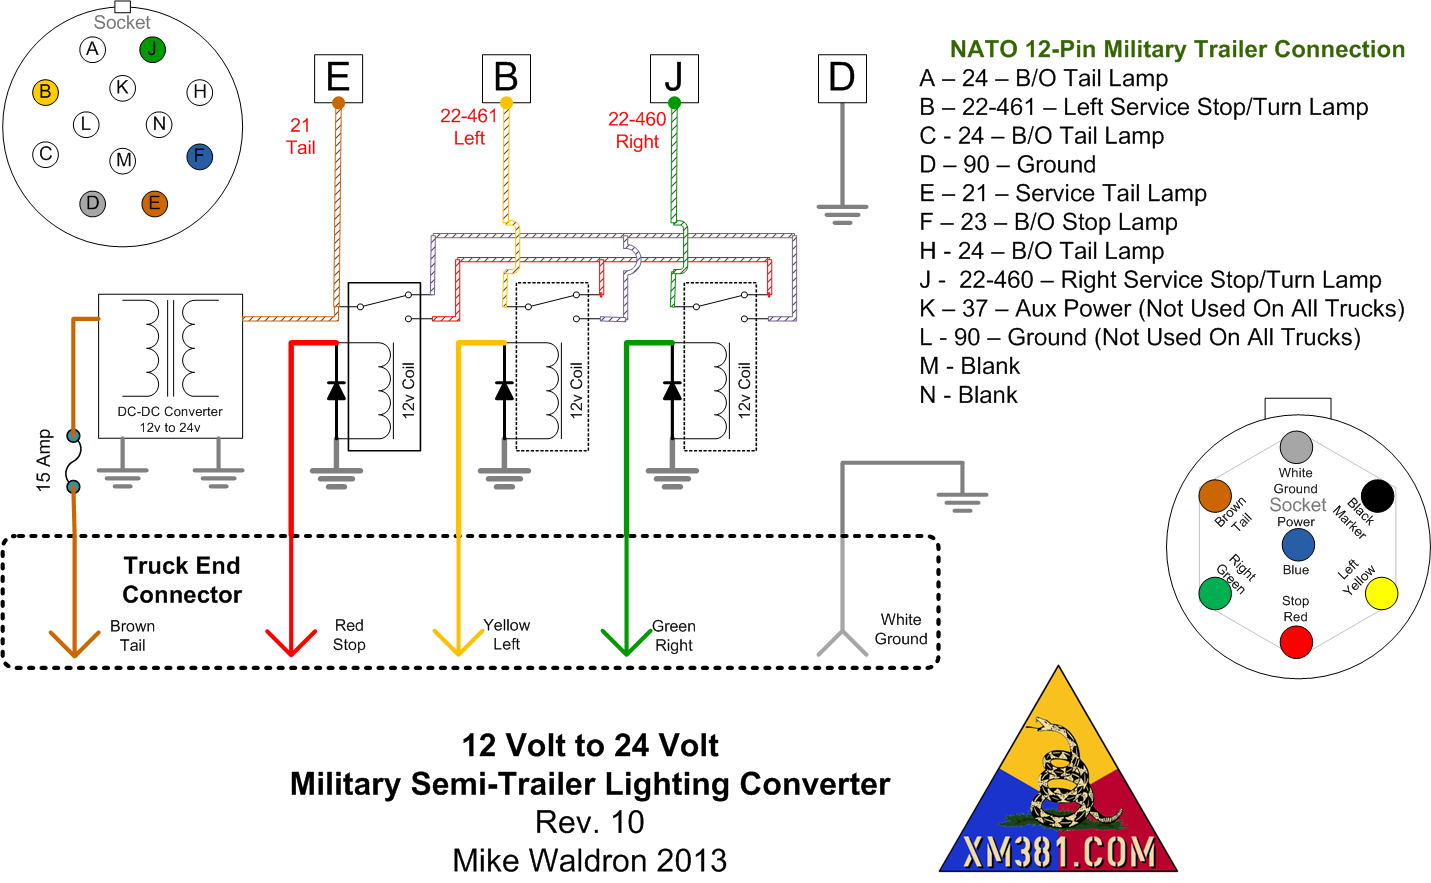 Military trailer wiring adapter « War Thunder, new game ...